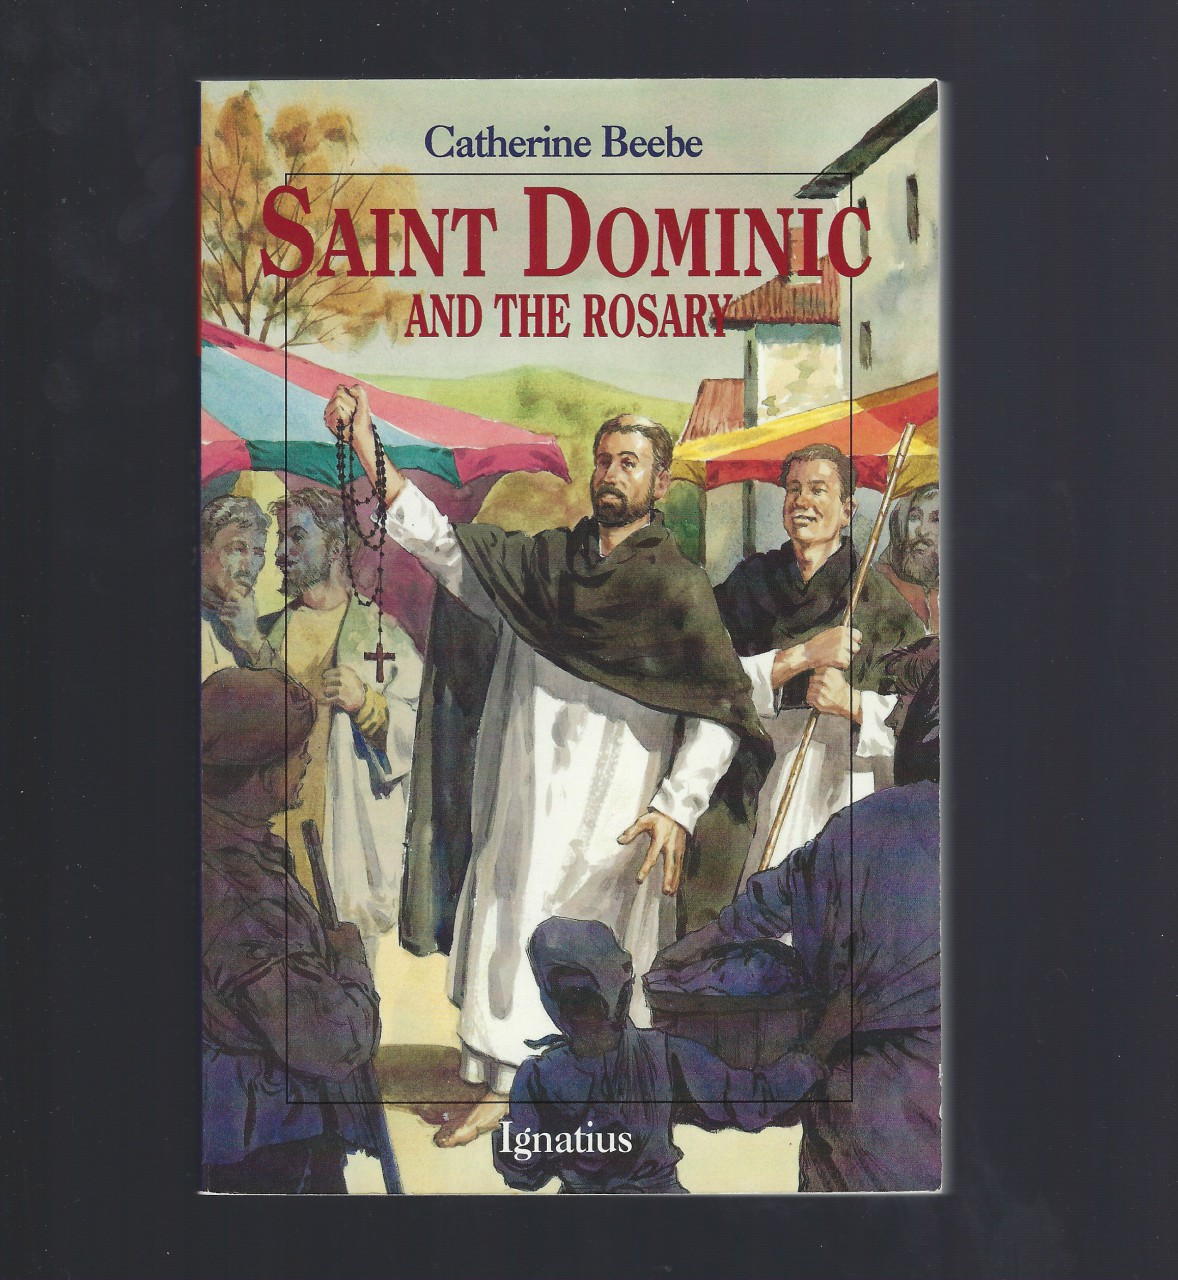 St. Dominic and the Rosary (VG) (Vision Books), Catherine Beebe